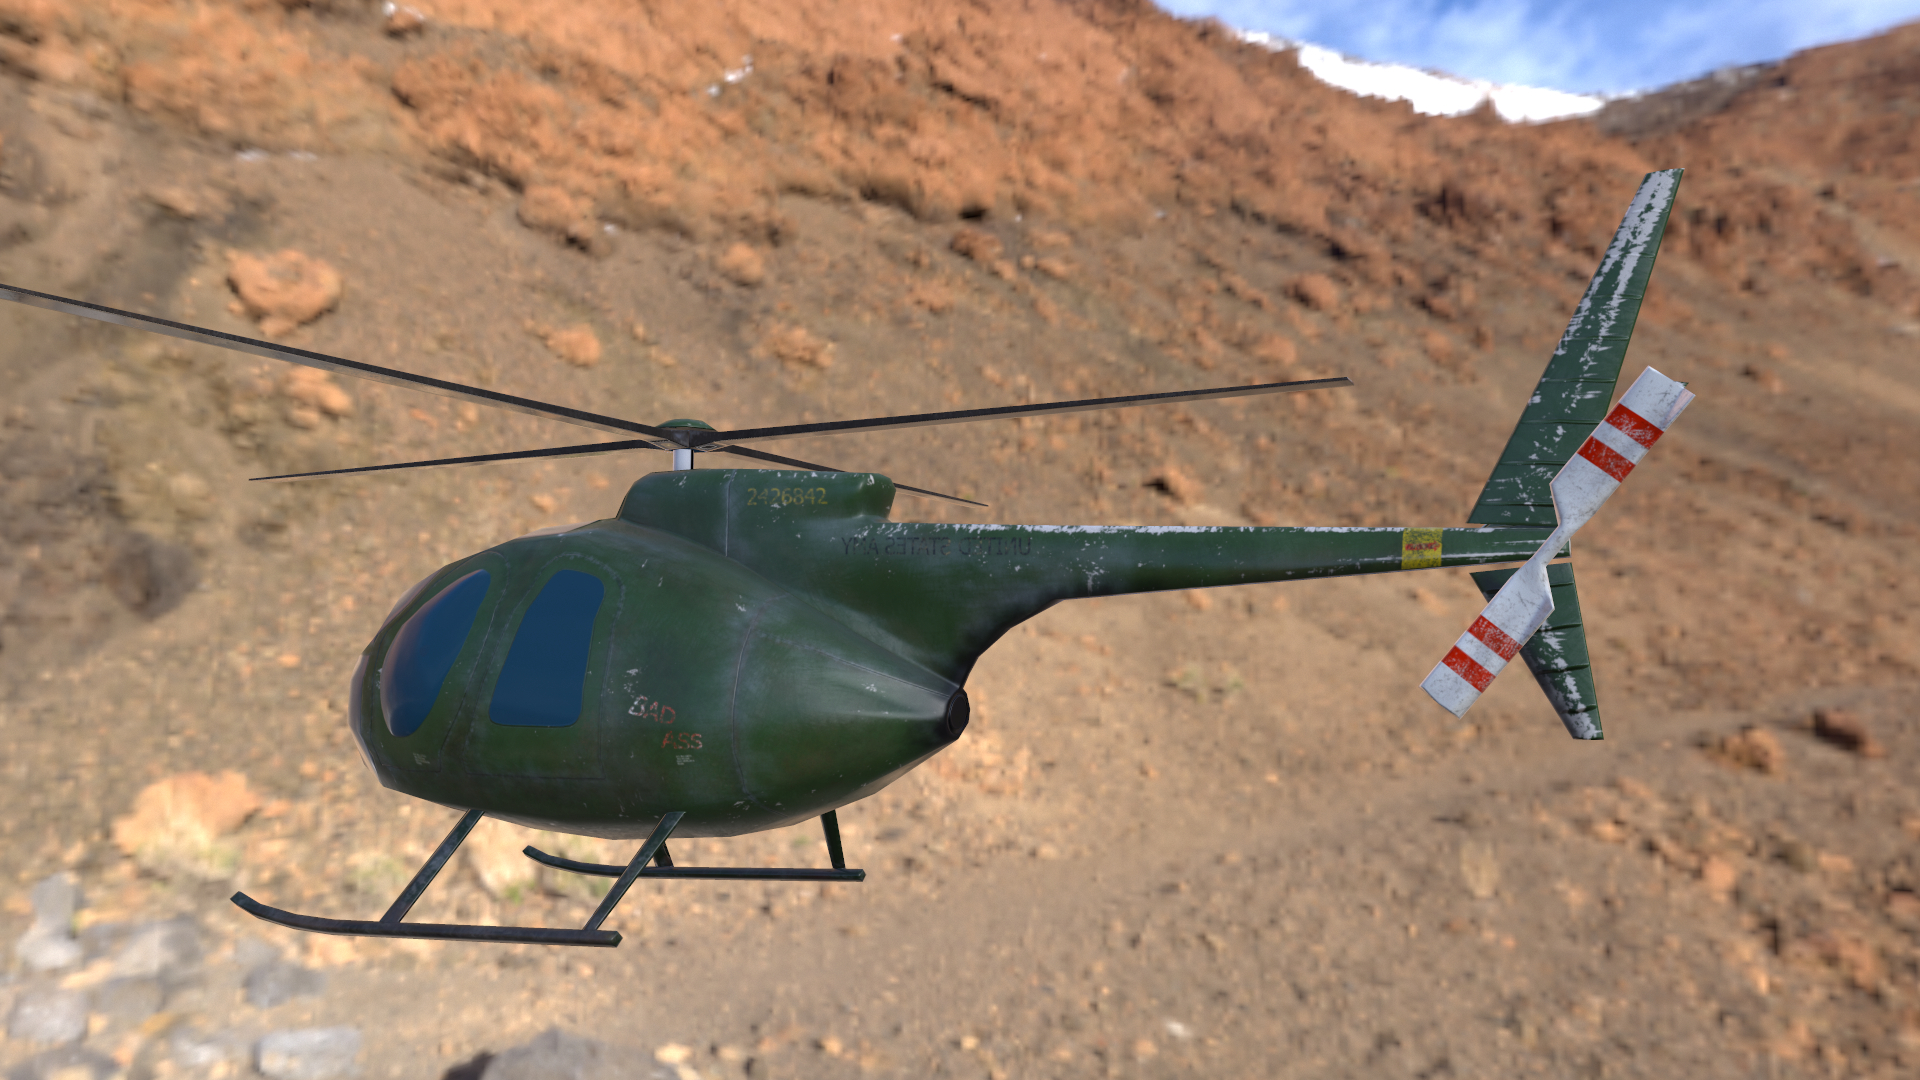 lowpoly helicopter model Hughes OH-6 Cayuse for mobile application in 3d max Other image